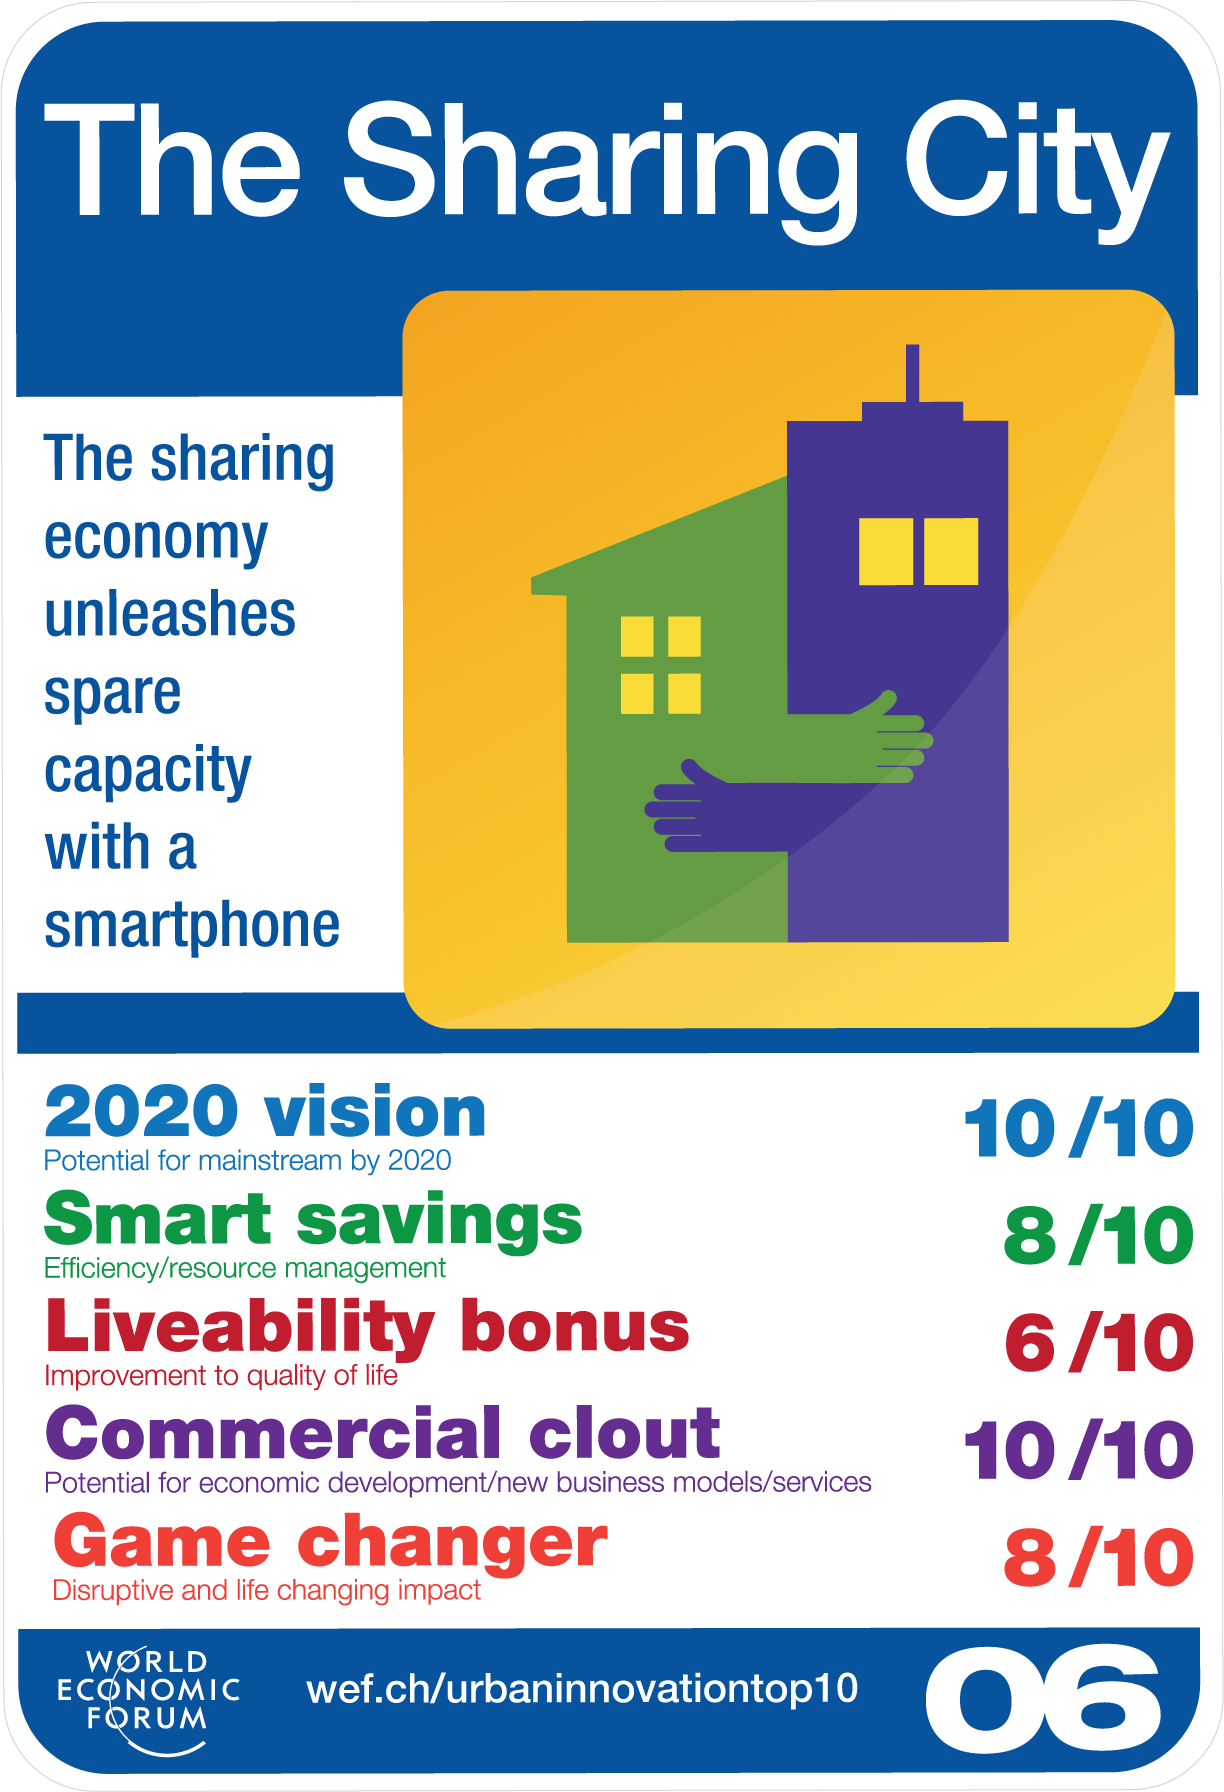 The Sharing City © World Economic Forum 2015